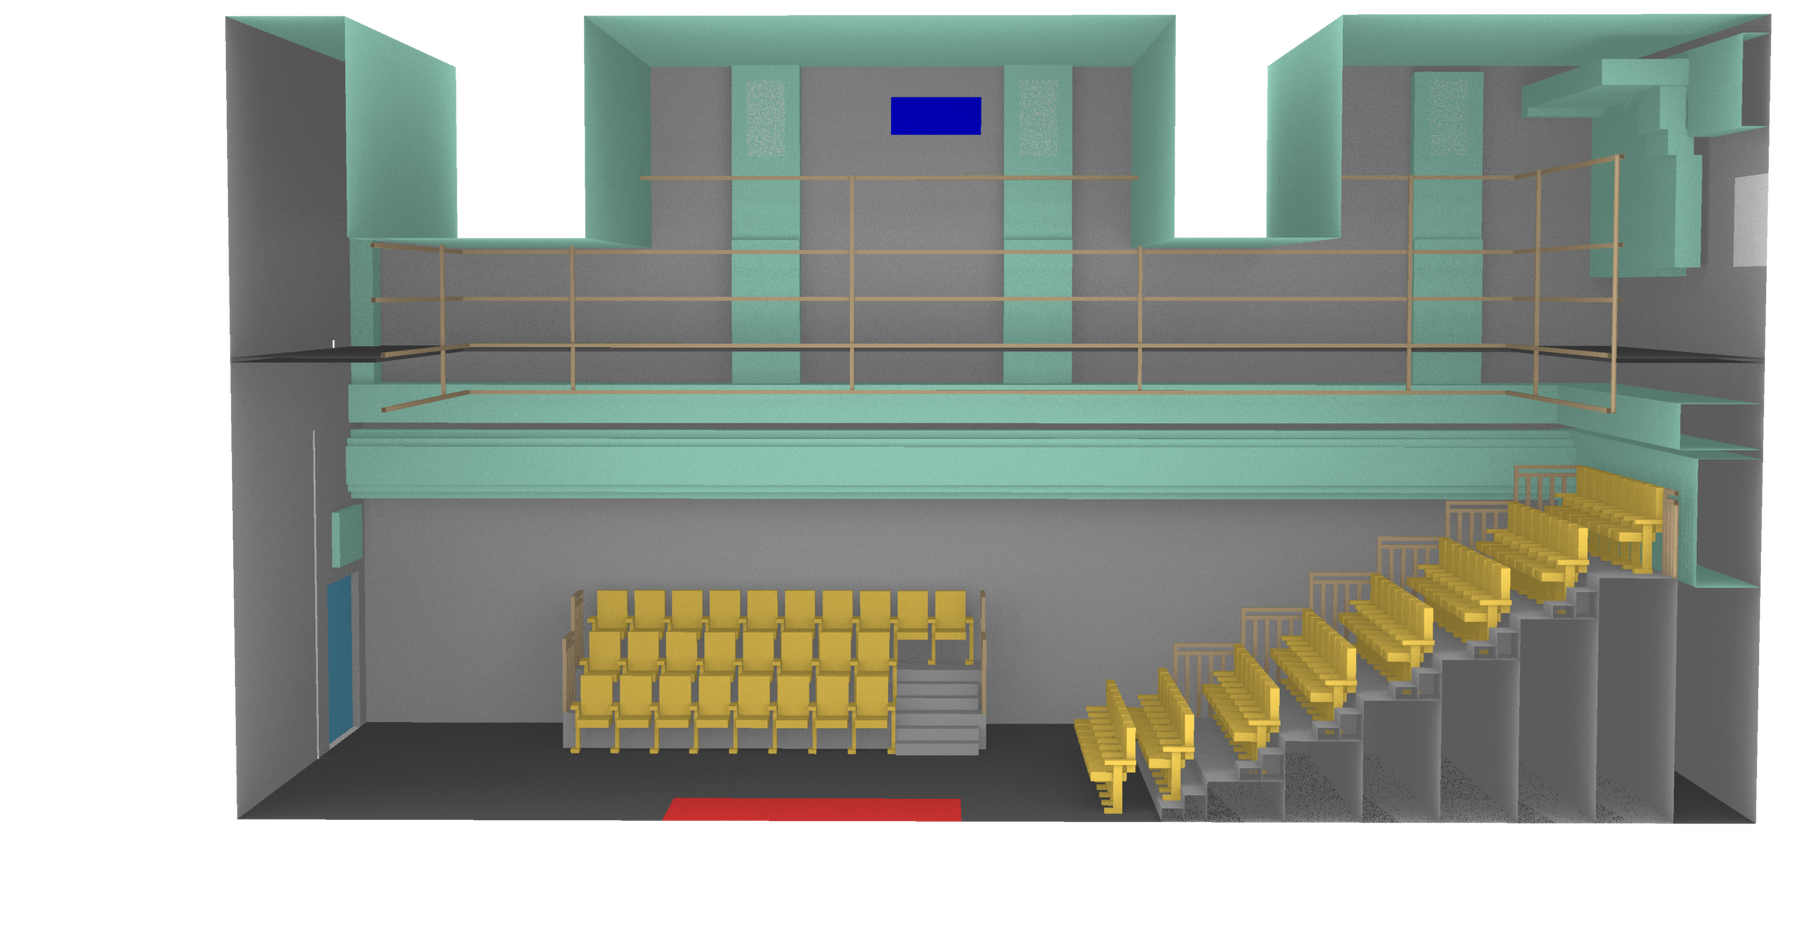 Theatre-Sectional-View-2-Transparent.png